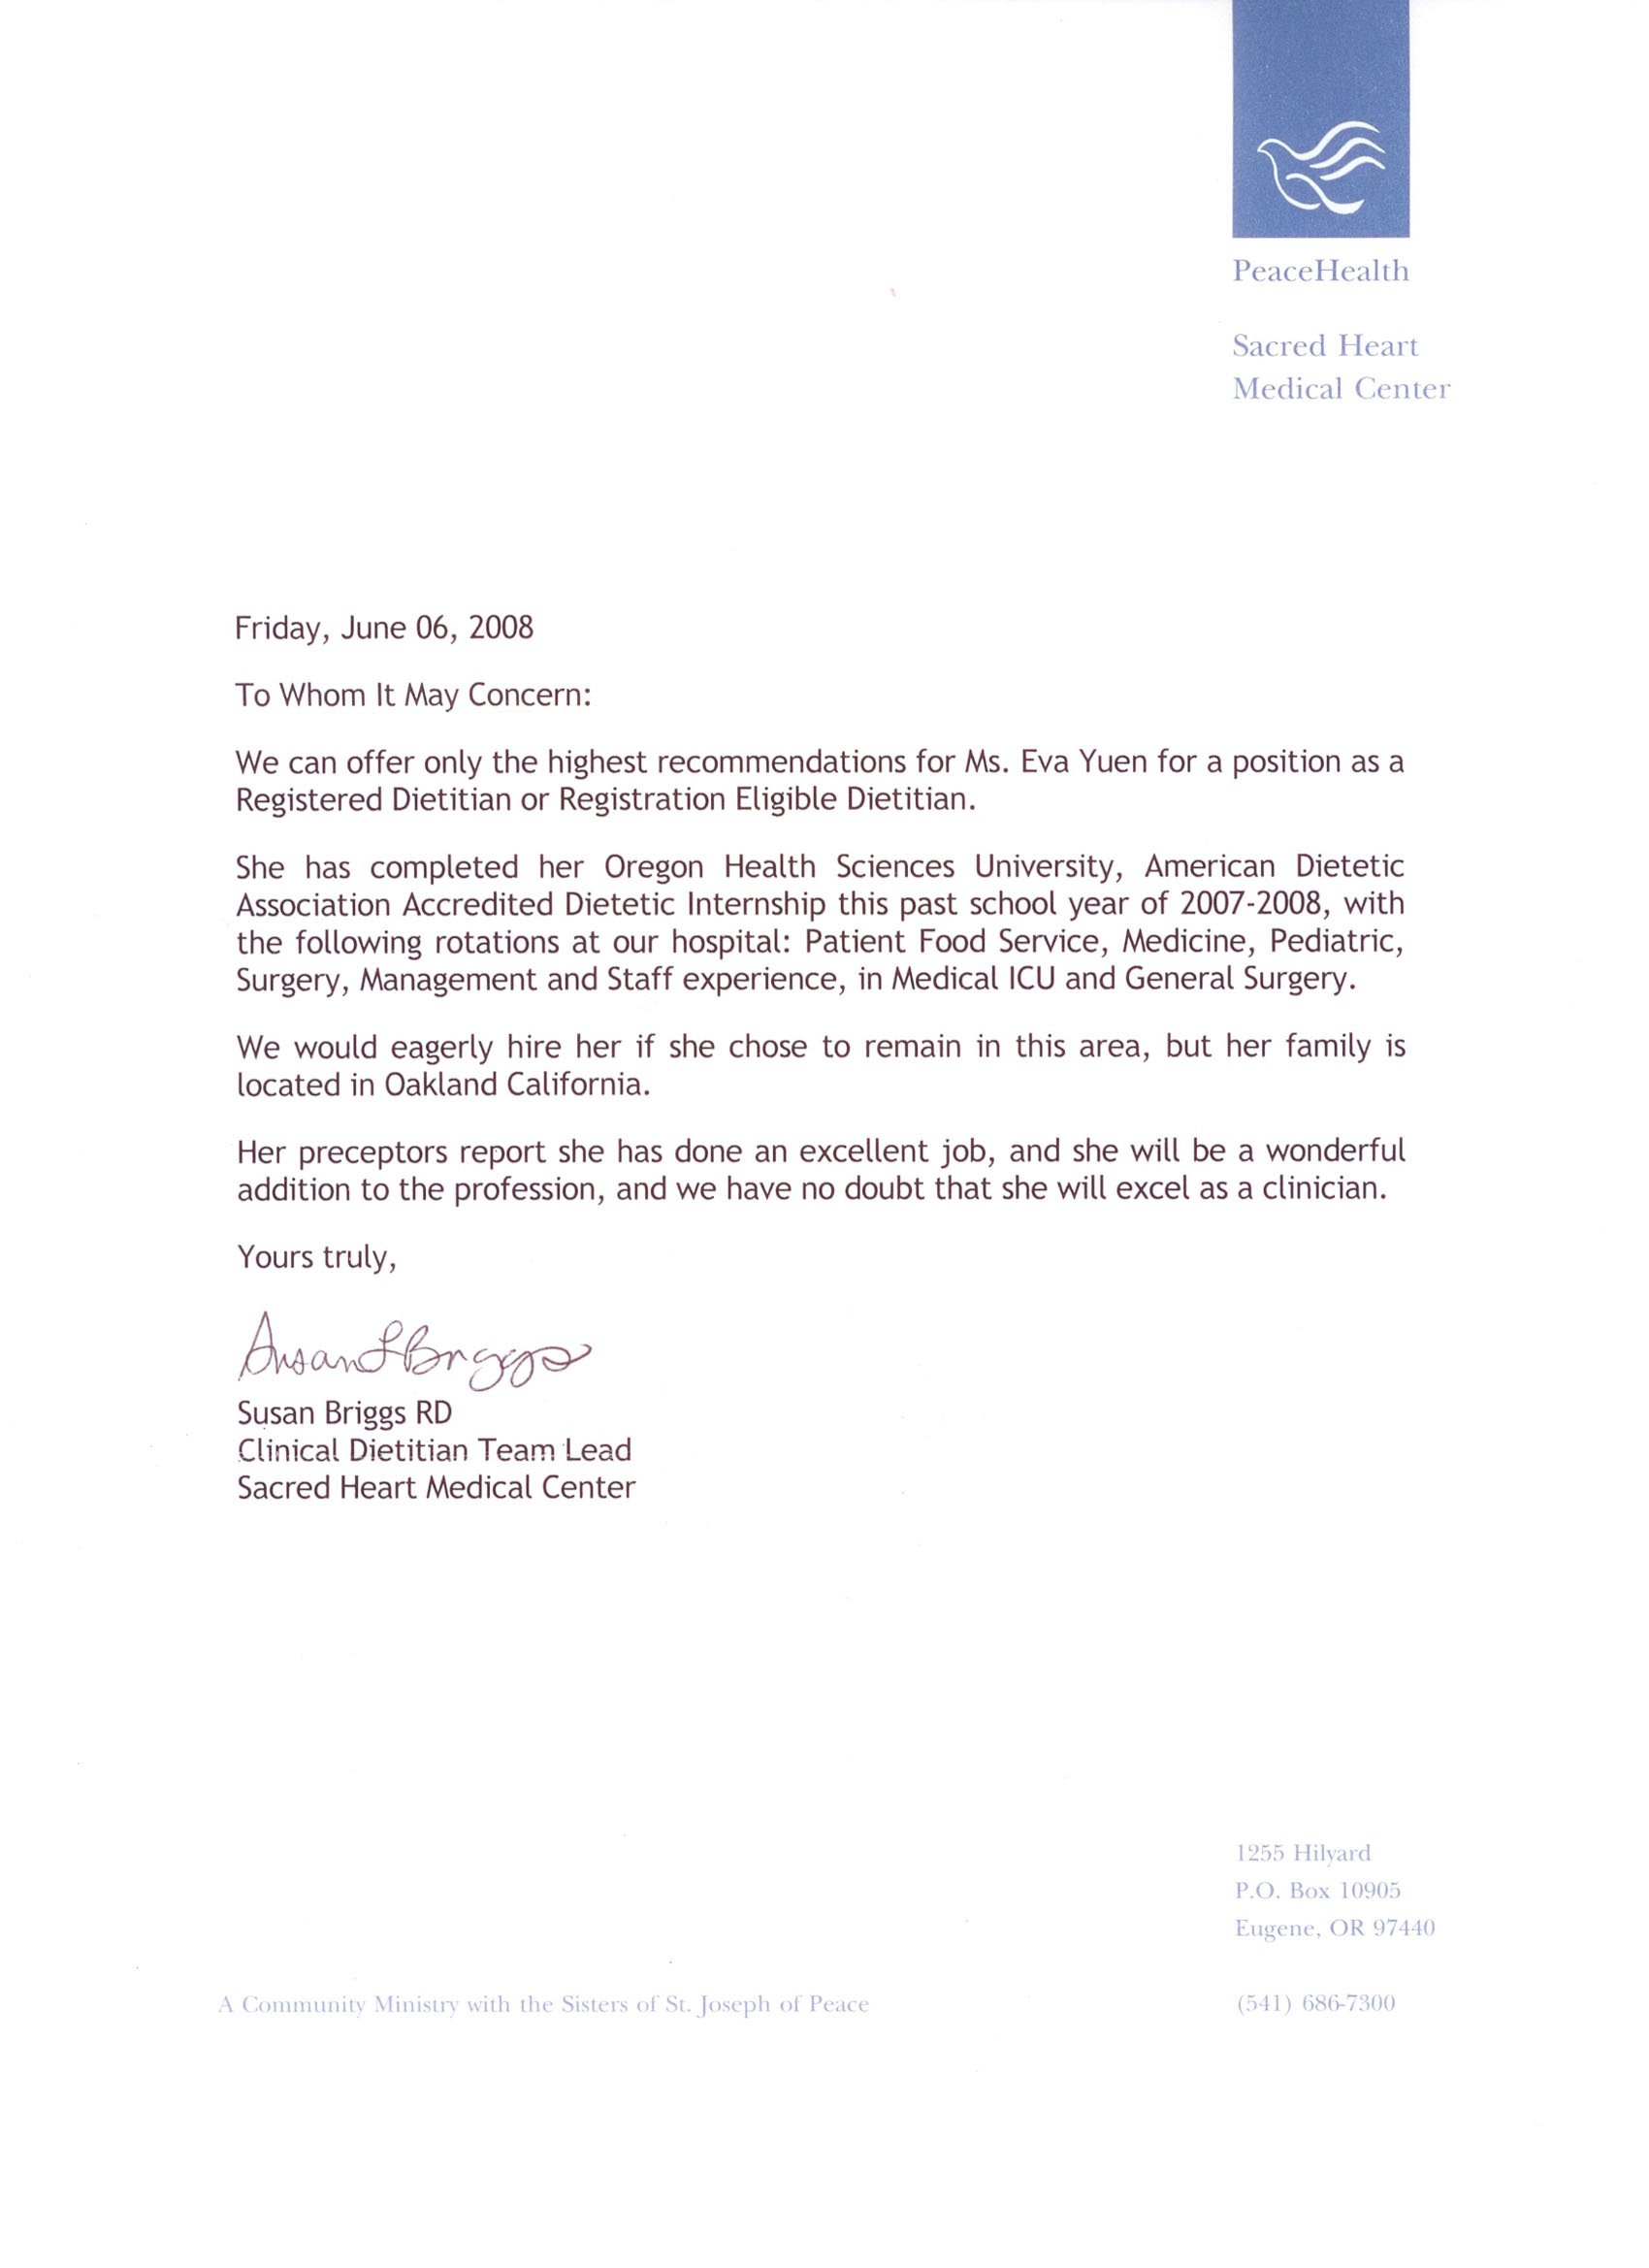 recommendation letter for medical school from doctor best online recommendation letter for medical school from doctor letters of recommendation letter of recommendation sample recommendation letter